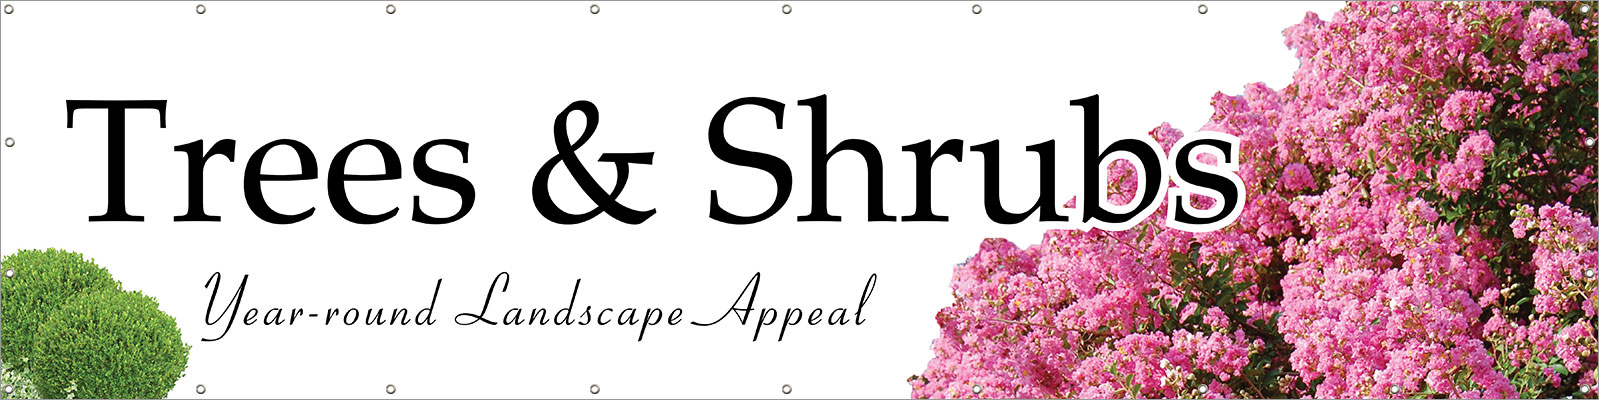 Trees & Shrubs 16' x 4' VINYL Double Sided banner